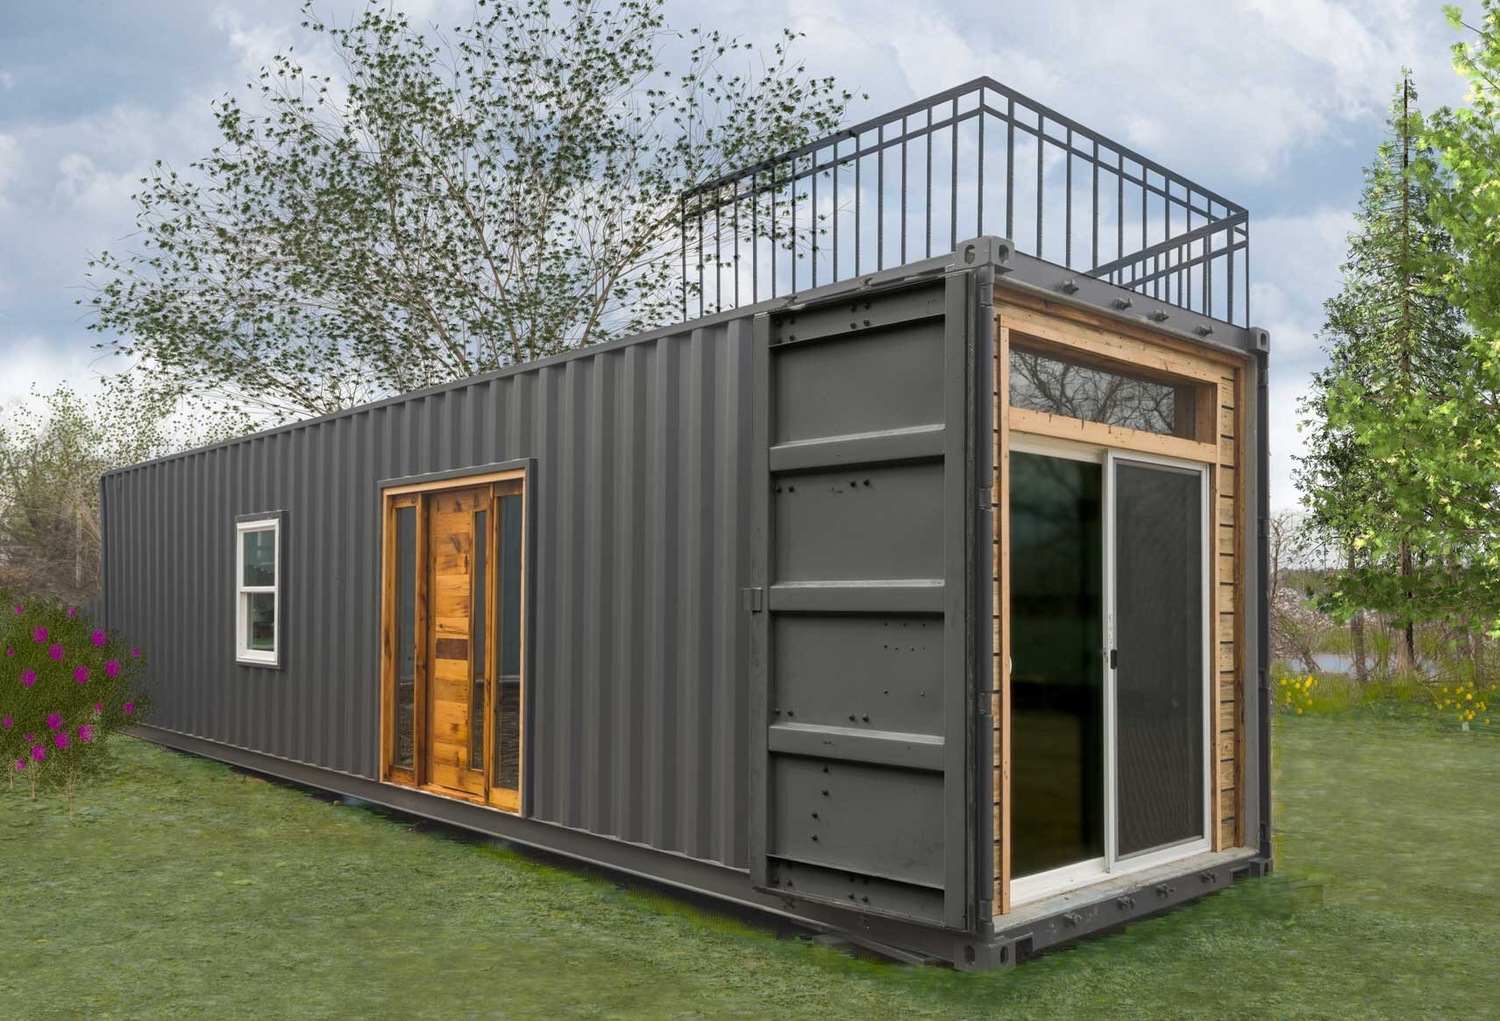 Tiny Home Designs: TINY HOUSE TOWN: Freedom From Minimalist Homes (300 Sq Ft